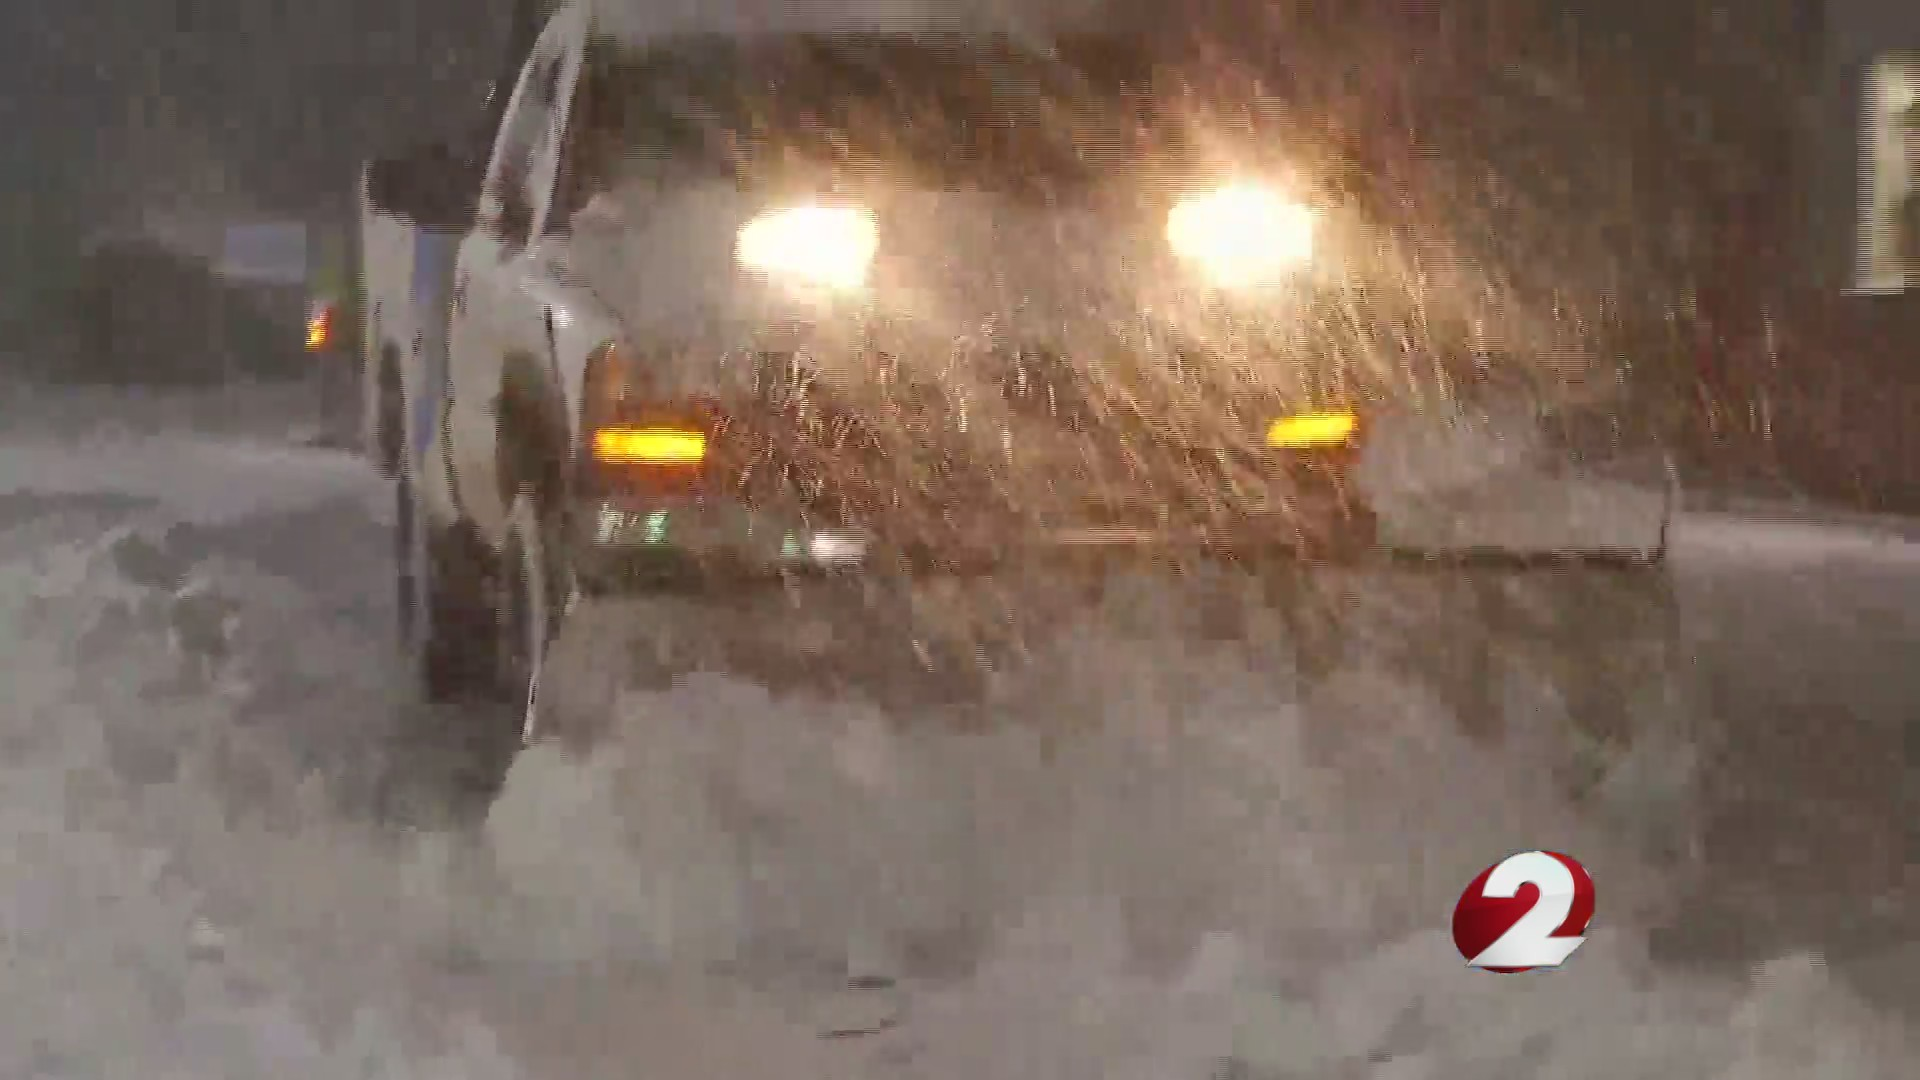 Snowstorm: Southern roads dangerous as slush refreezes